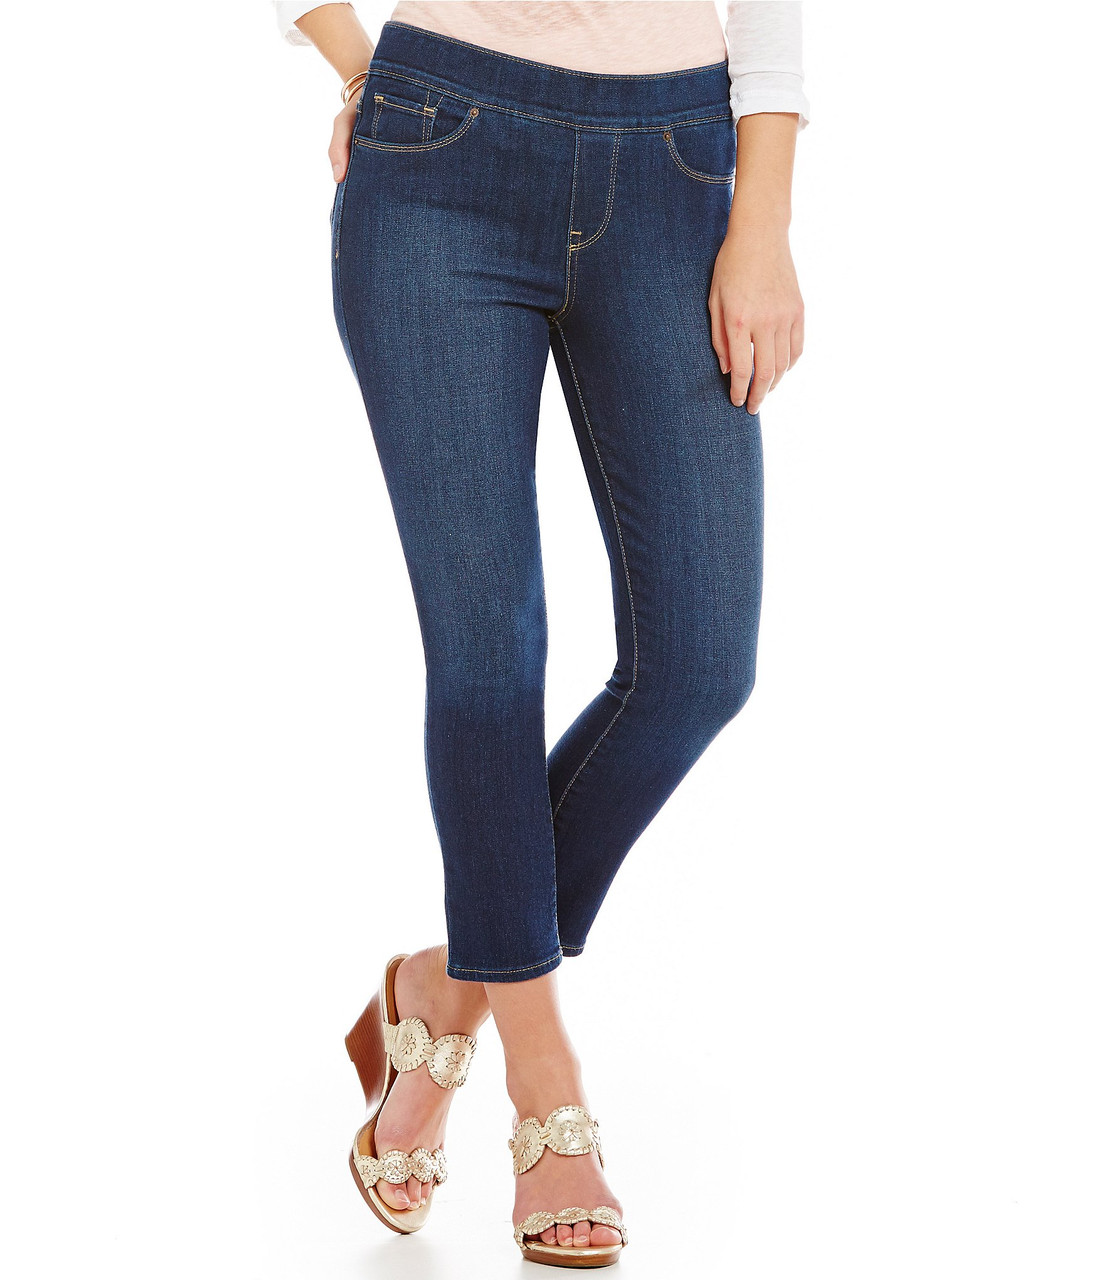 Джинсы Levi's Perfectly Slimming on Cropped Jeans, Dark Delight